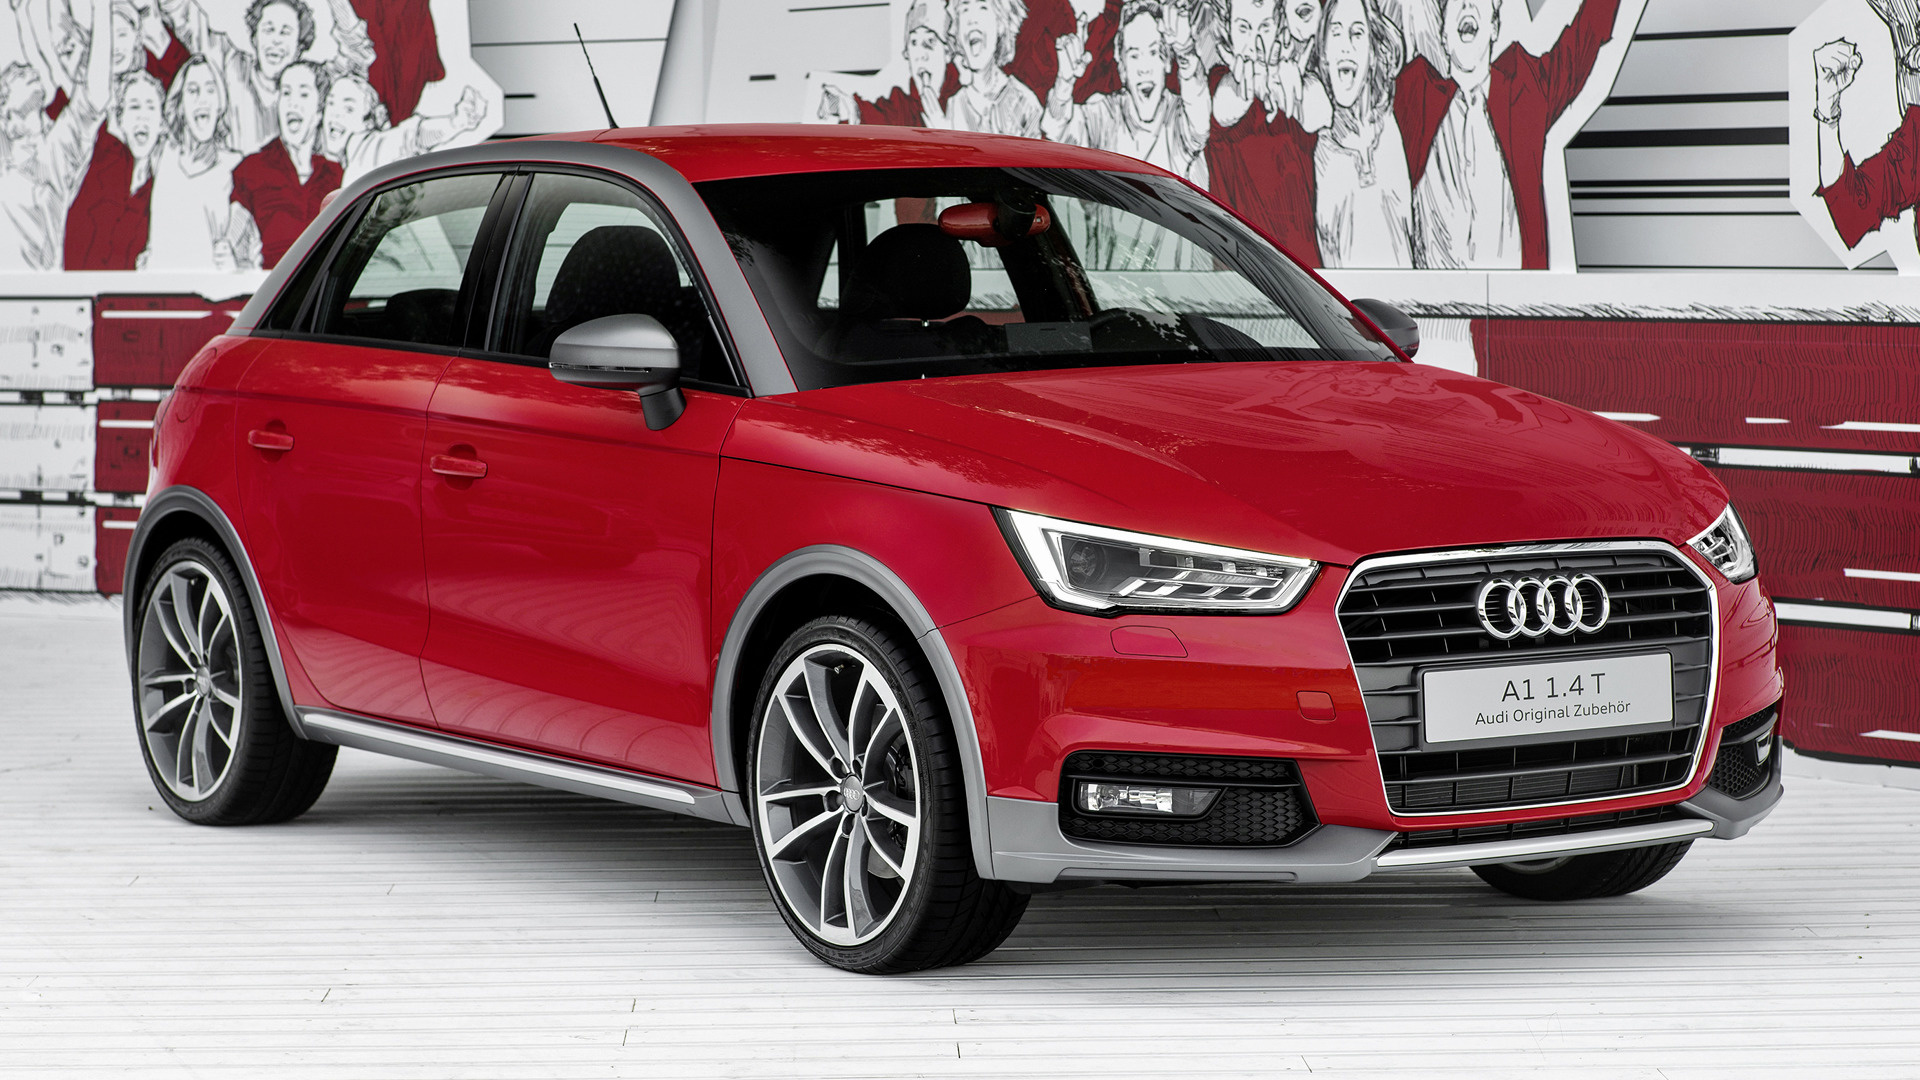 2015 Audi A1 Sportback With Genuine Accessories